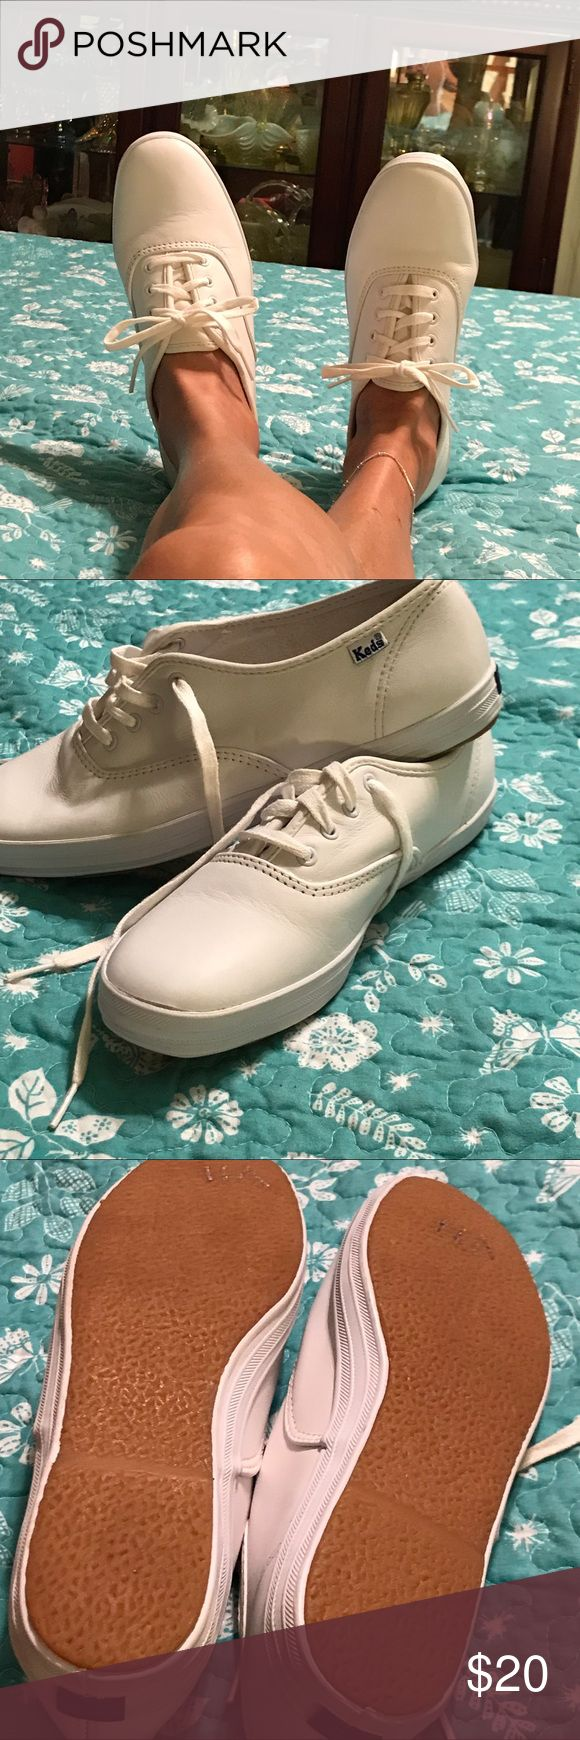 ladies white leather ked tennis shoes excellent condition ladies white leather kid tennis shoes size 7 1/2 superb condition hardly worn if you have any questions please ask I do except offers thank you for looking and happy poshing Keds Shoes Sneakers